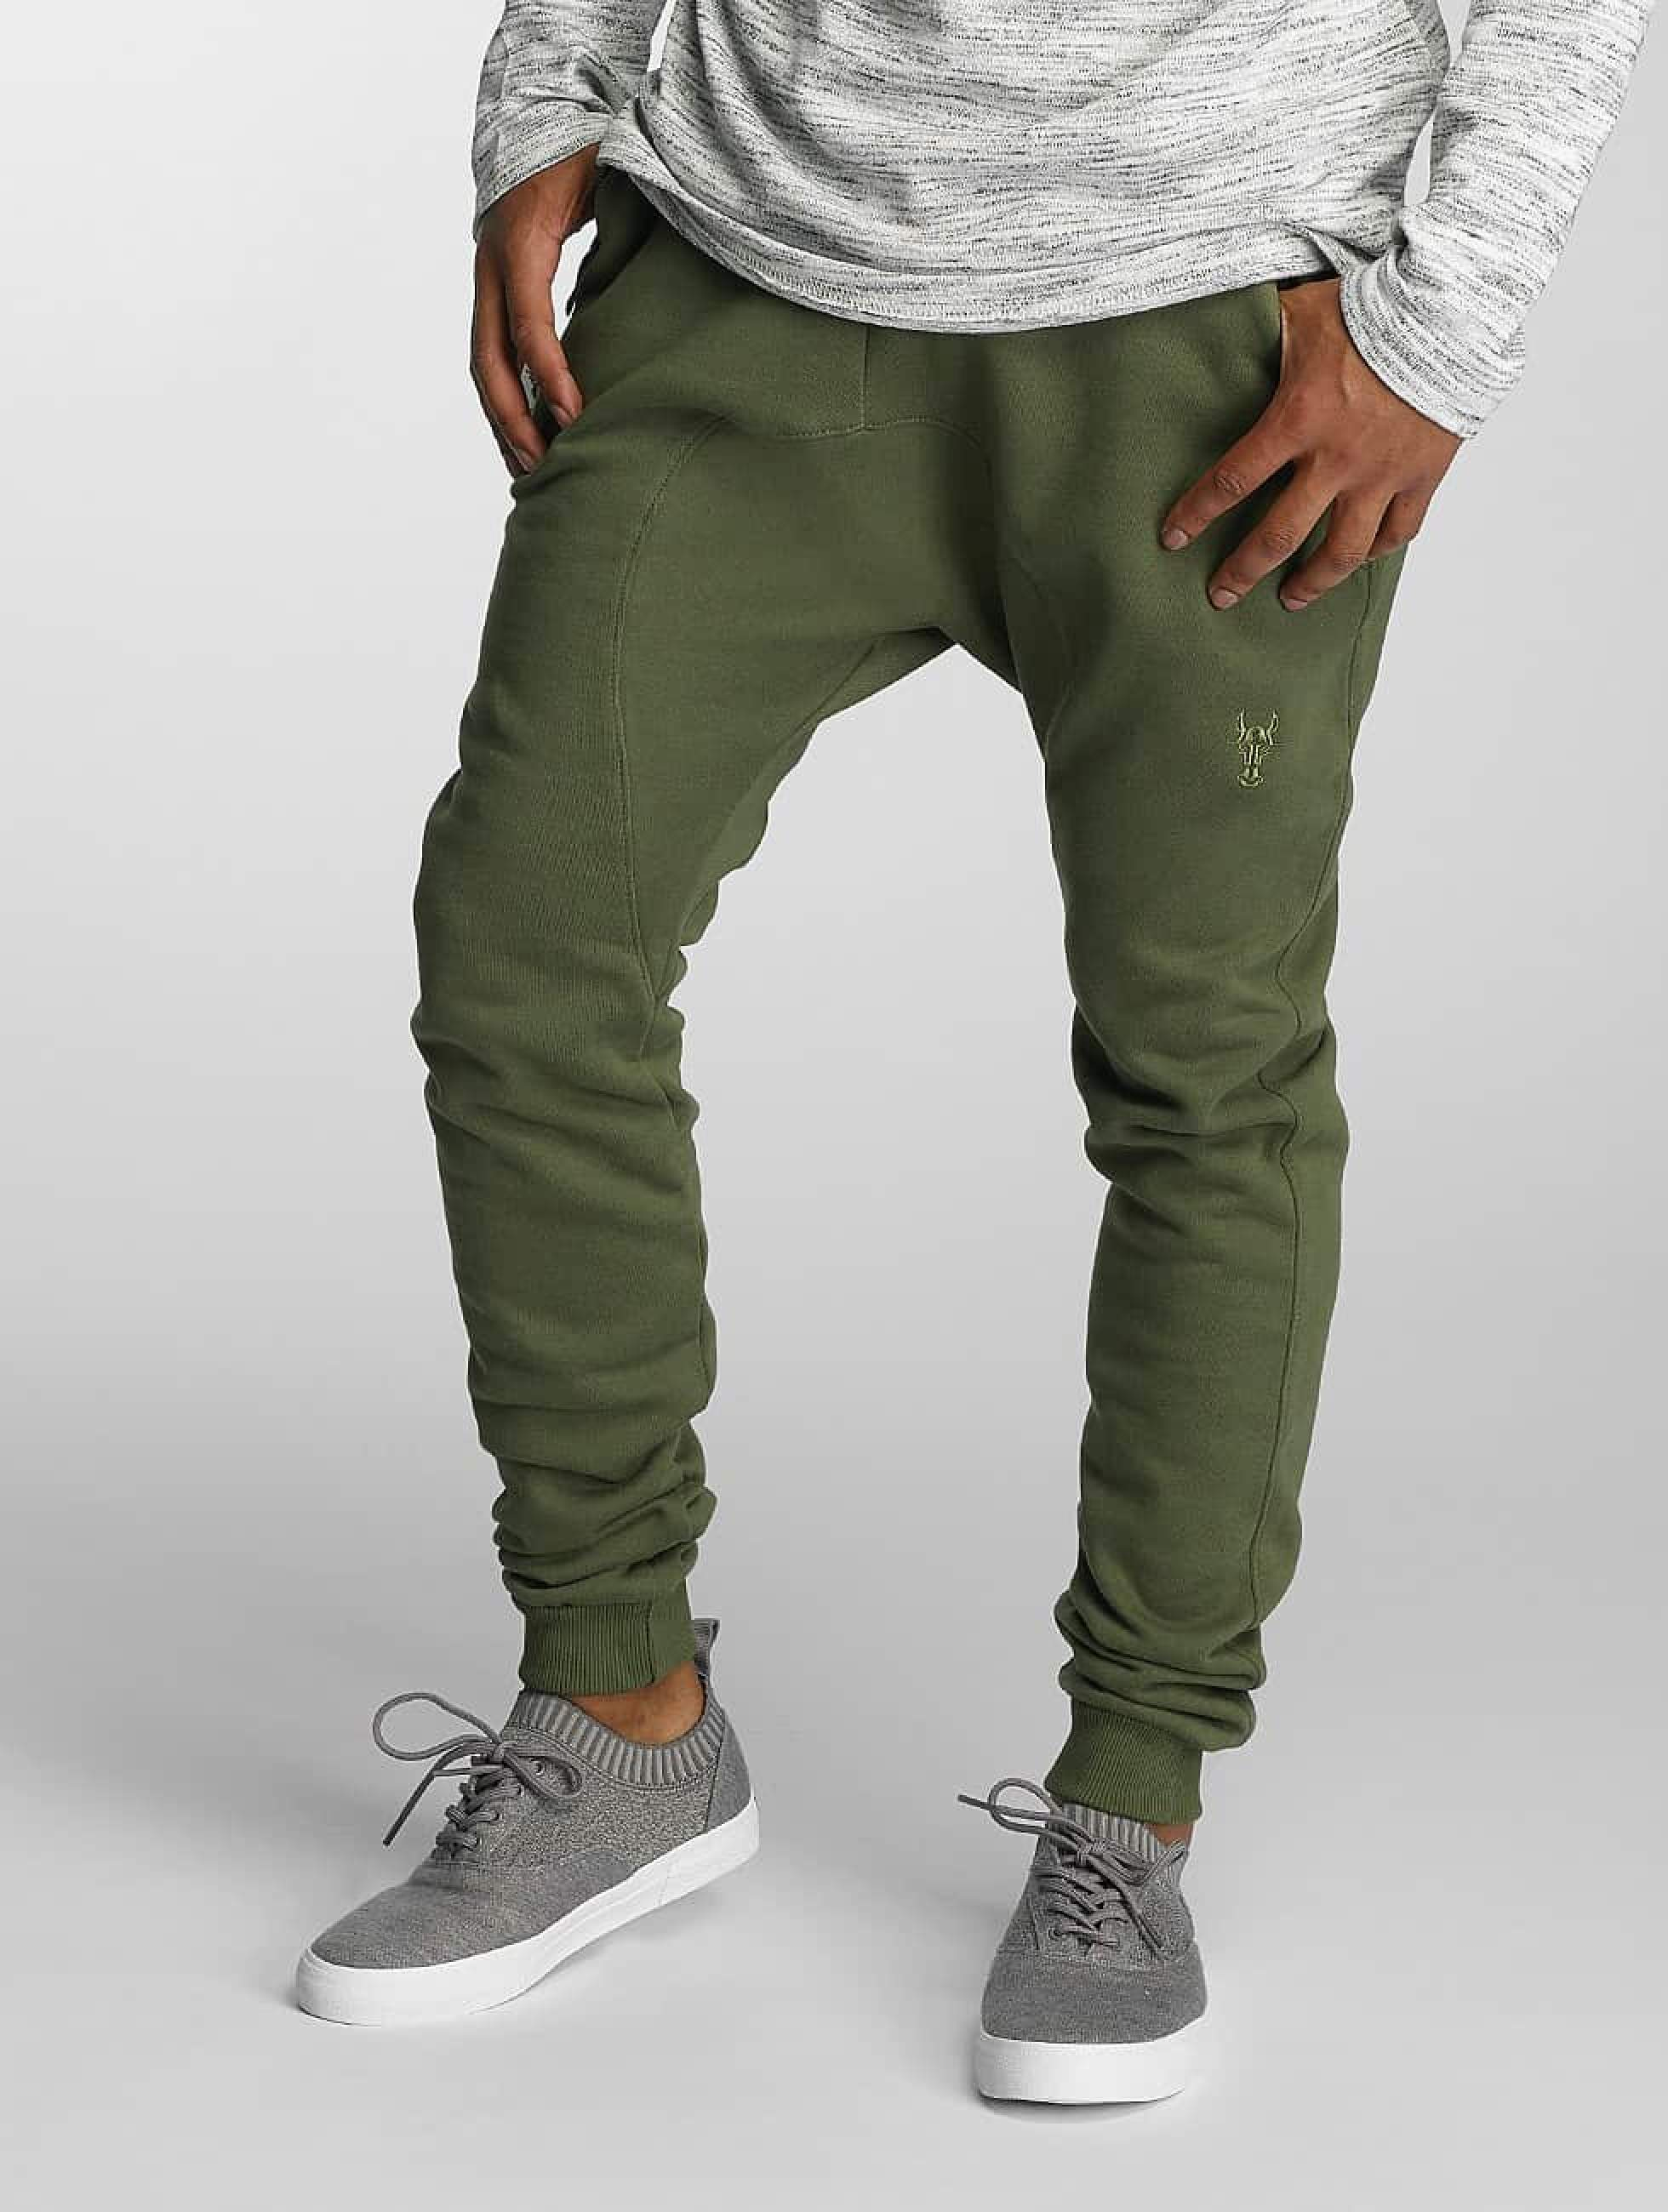 De Ferro / Sweat Pant Abram in olive L